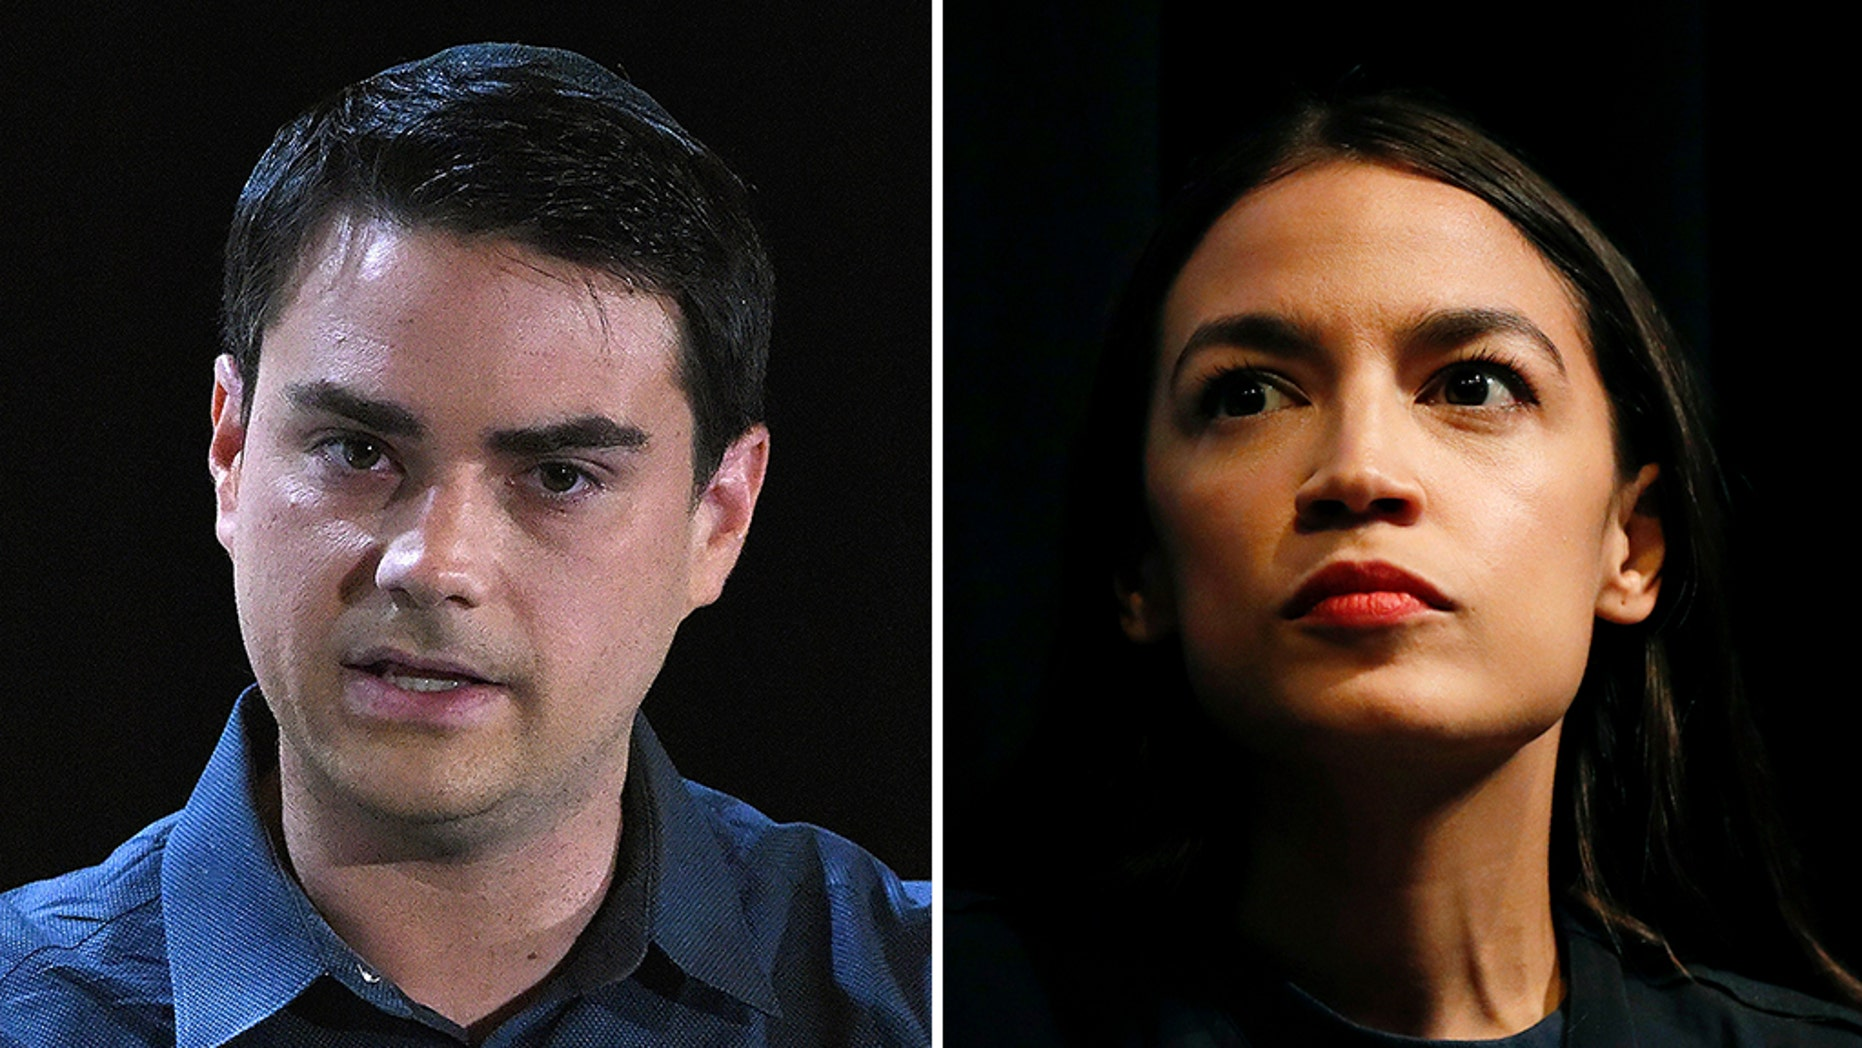 Ben Shapiro wants to have a discussion with Democratic Socialist Alexandria Ocasio-Cortez.